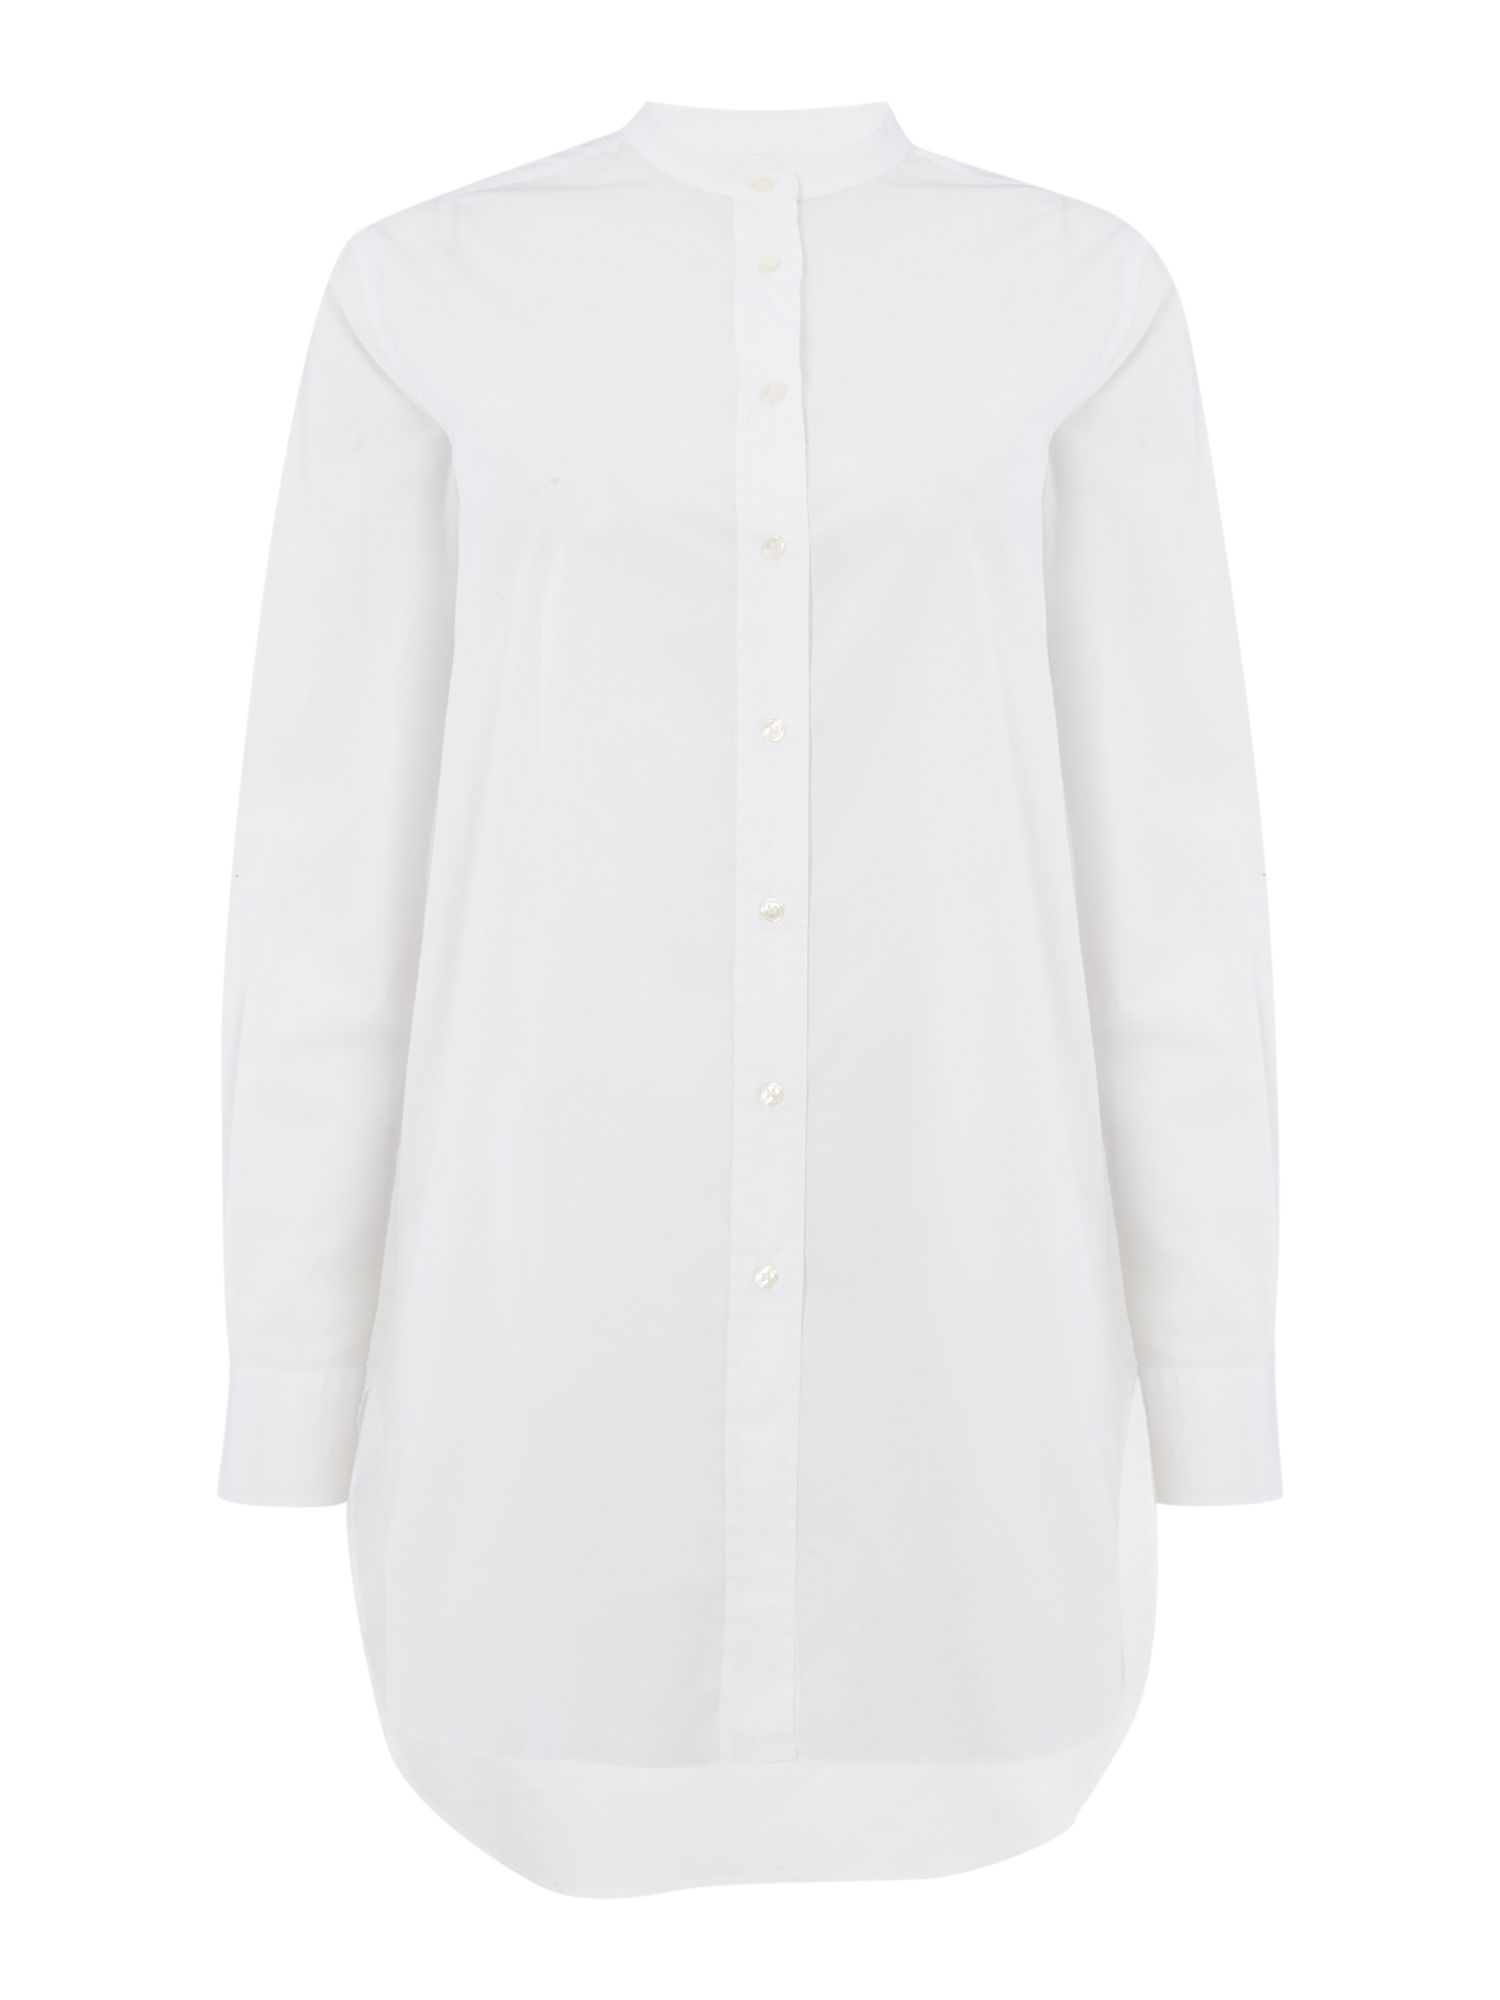 Gant Woven long white shirt, White